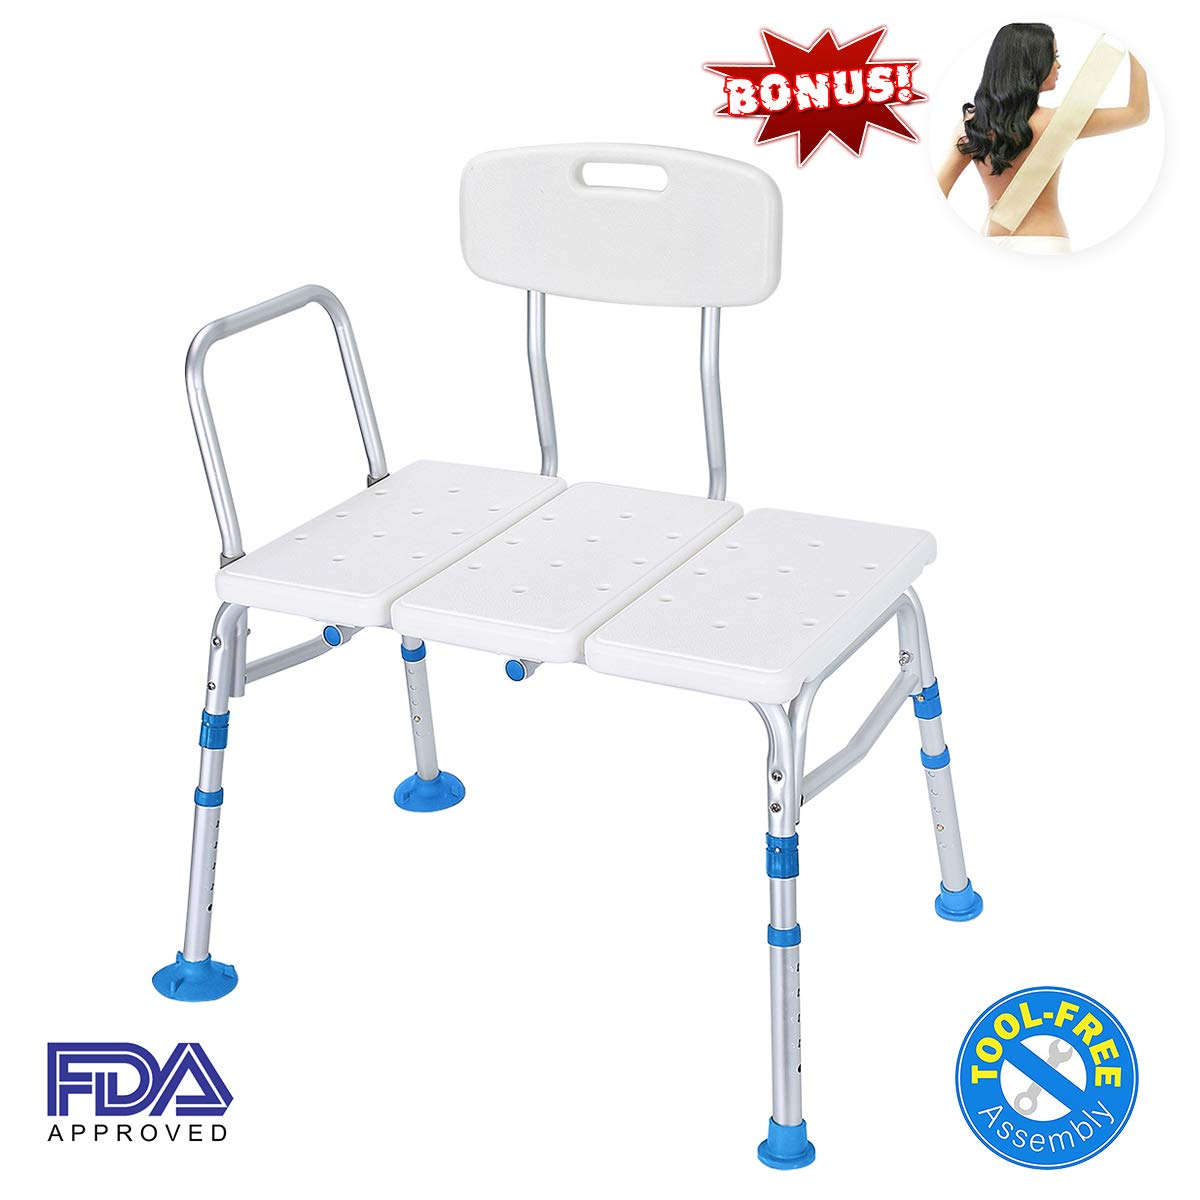 Health Line Tool-Free 400 lbs Transfer Bench Tub Adjustable Shower Bath Chair, Great for Elderly, Disabled, Seniors & Bariatric - Free Loofah Back Scrubber